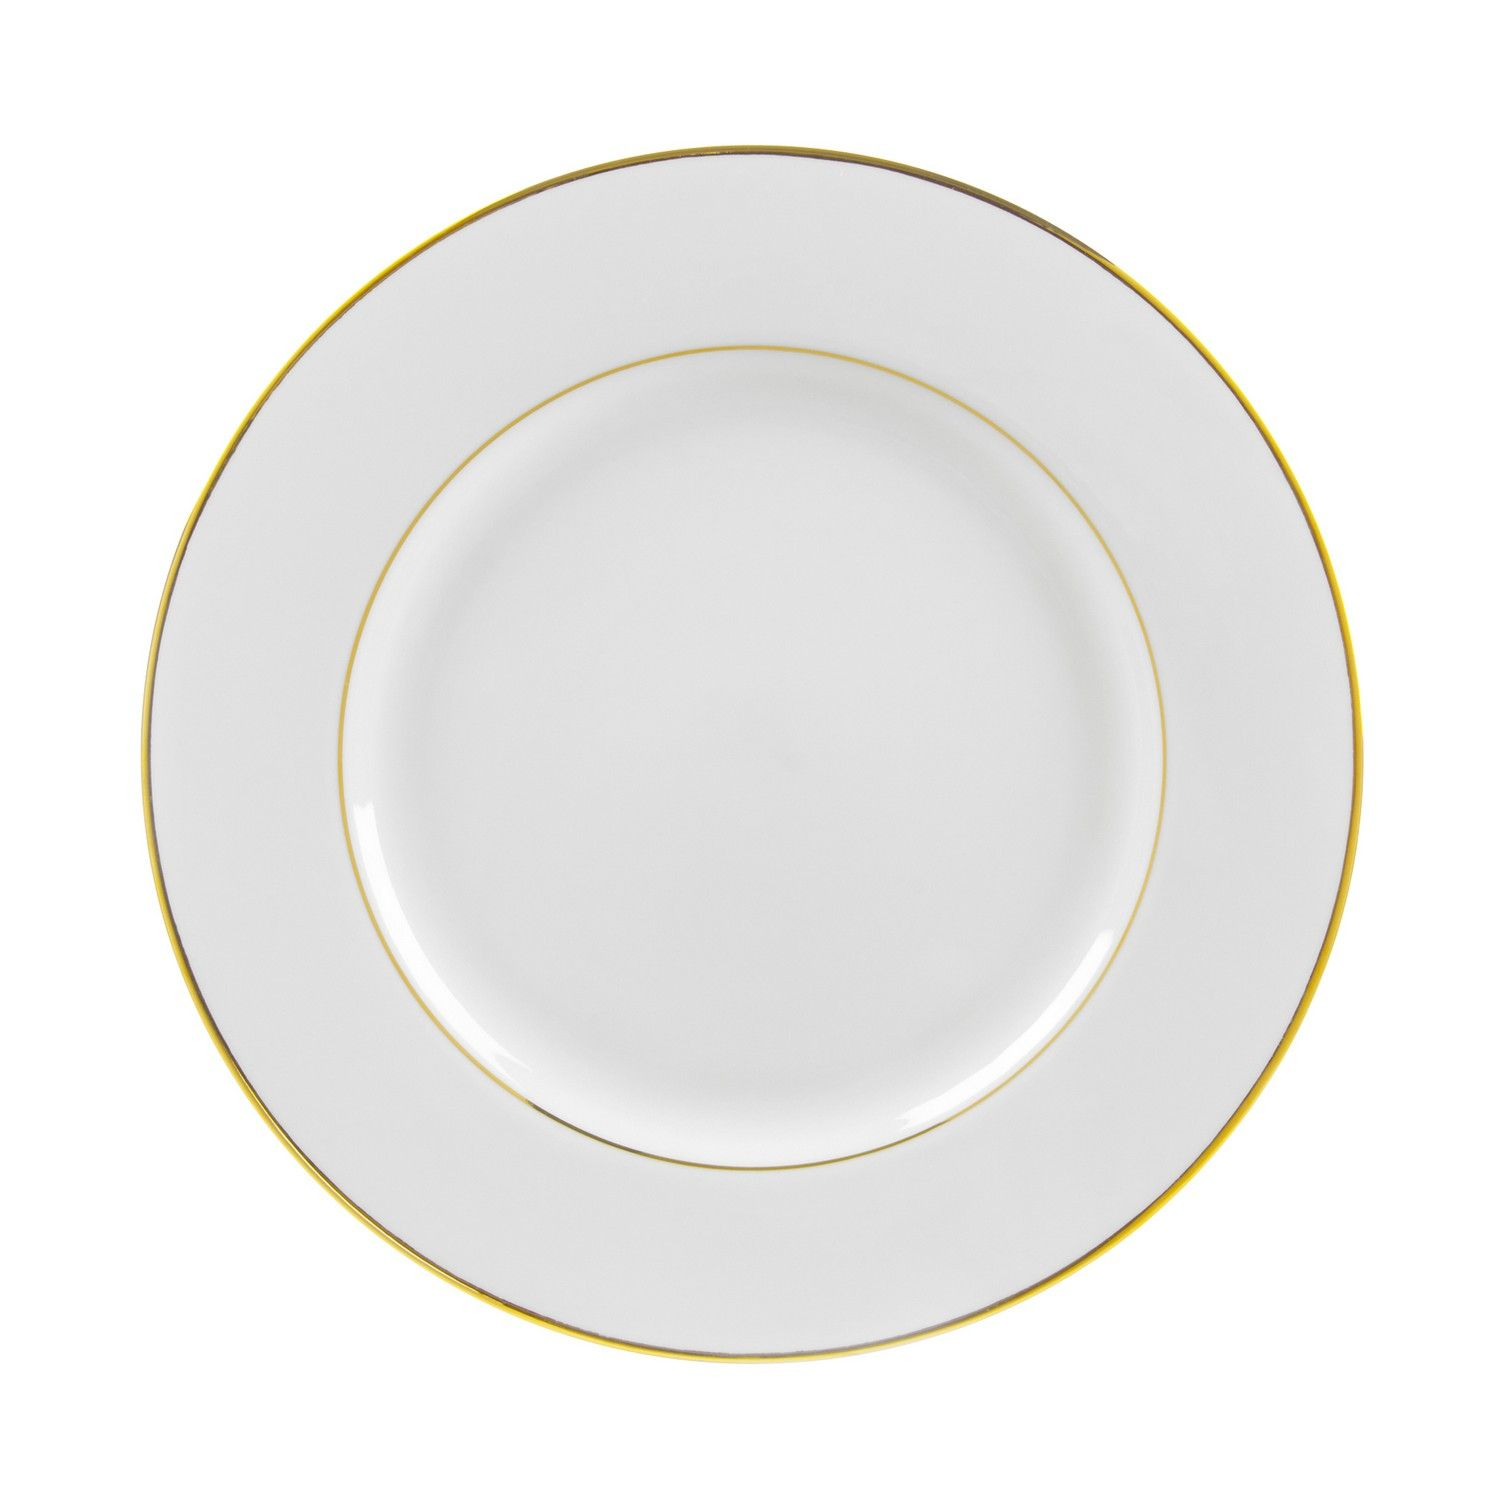 13 4l X 1h Gold Double Line Dinner Plate Case Of 24 Dinner Plate Sets Dinner Plates 10 Strawberry Street